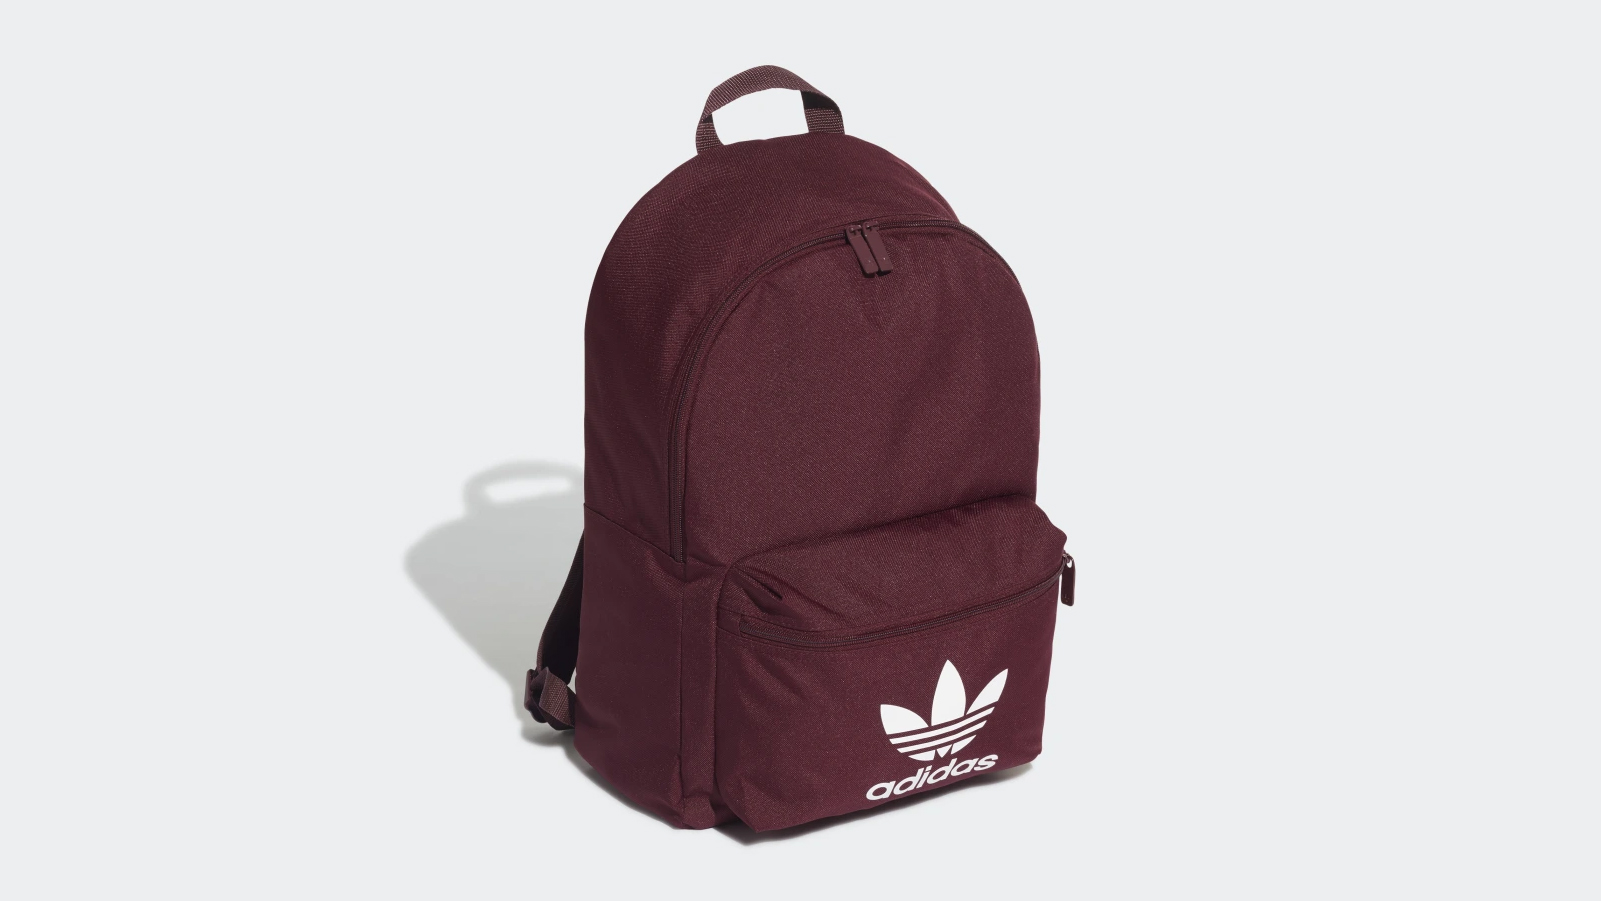 6dff75d1ac Adidas backpack deals: Amazon US slashes the price of backpacks for ...